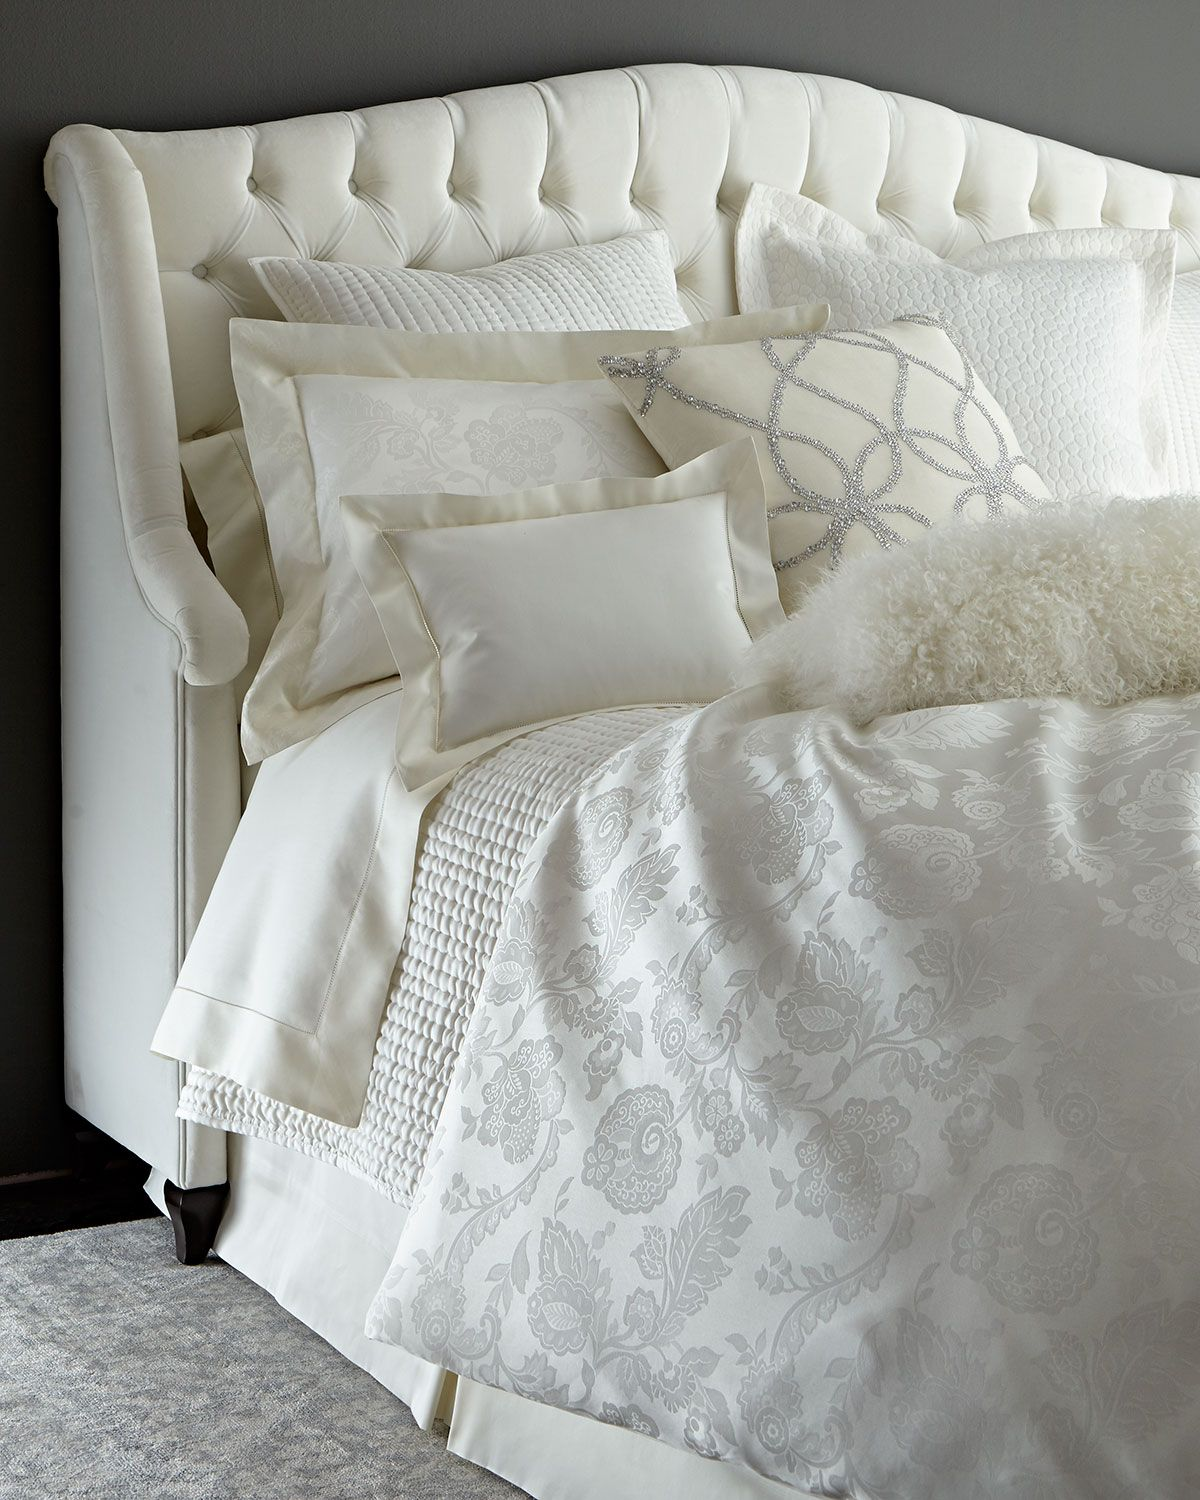 Annie Selke Luxe Chinois Bedding & Seta Quilted Silk Bedding